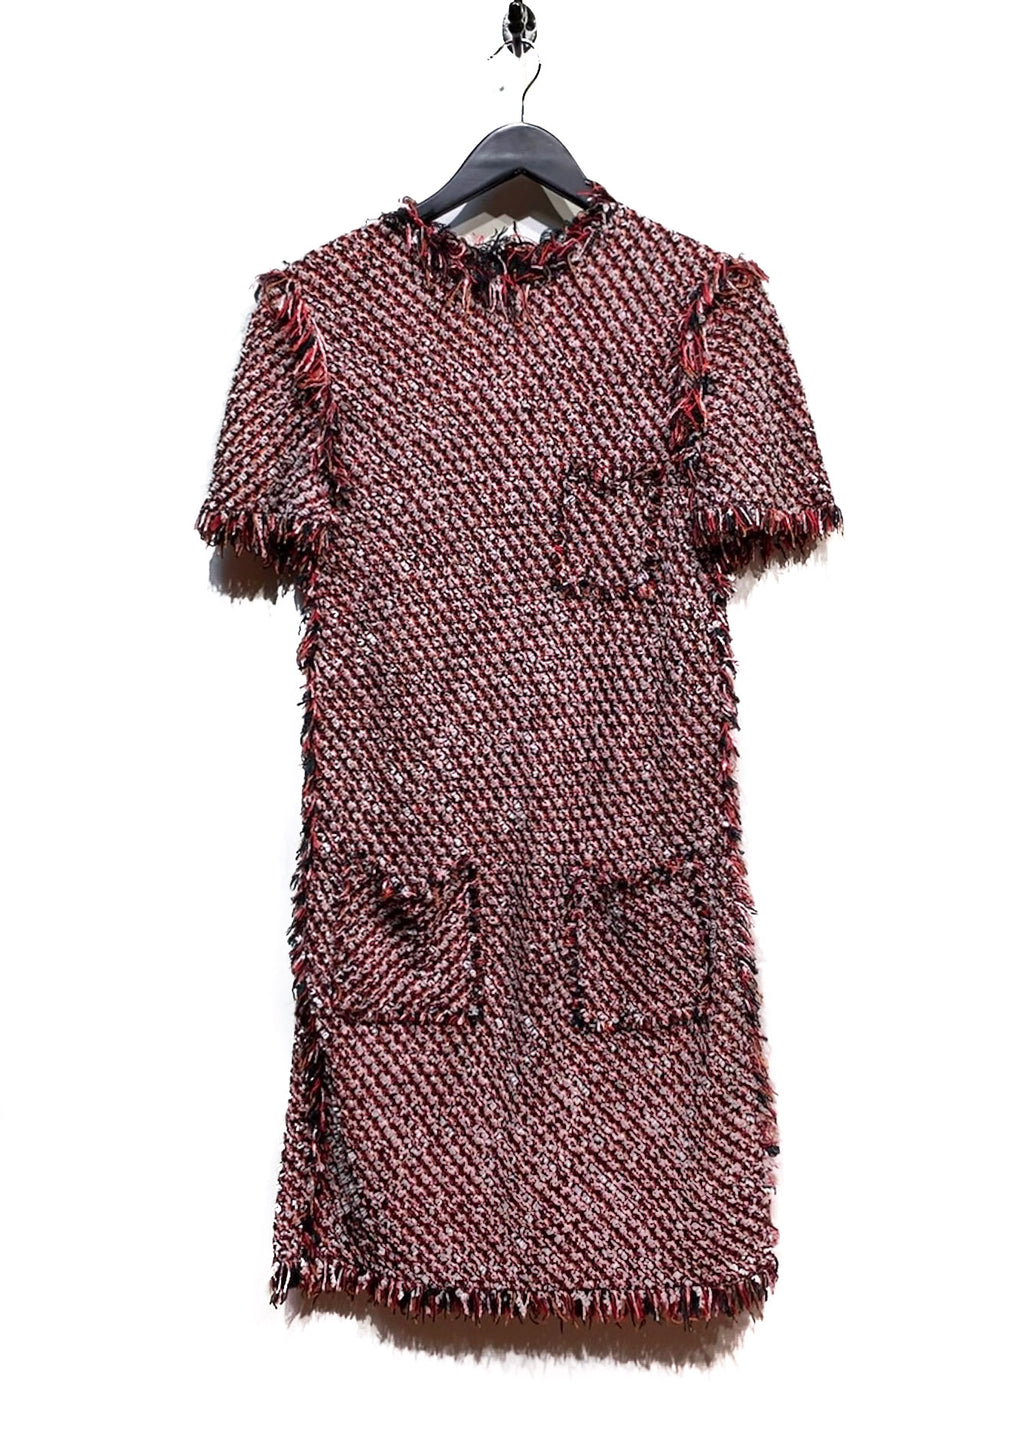 Lanvin Deconstructed Red Tweed Dress